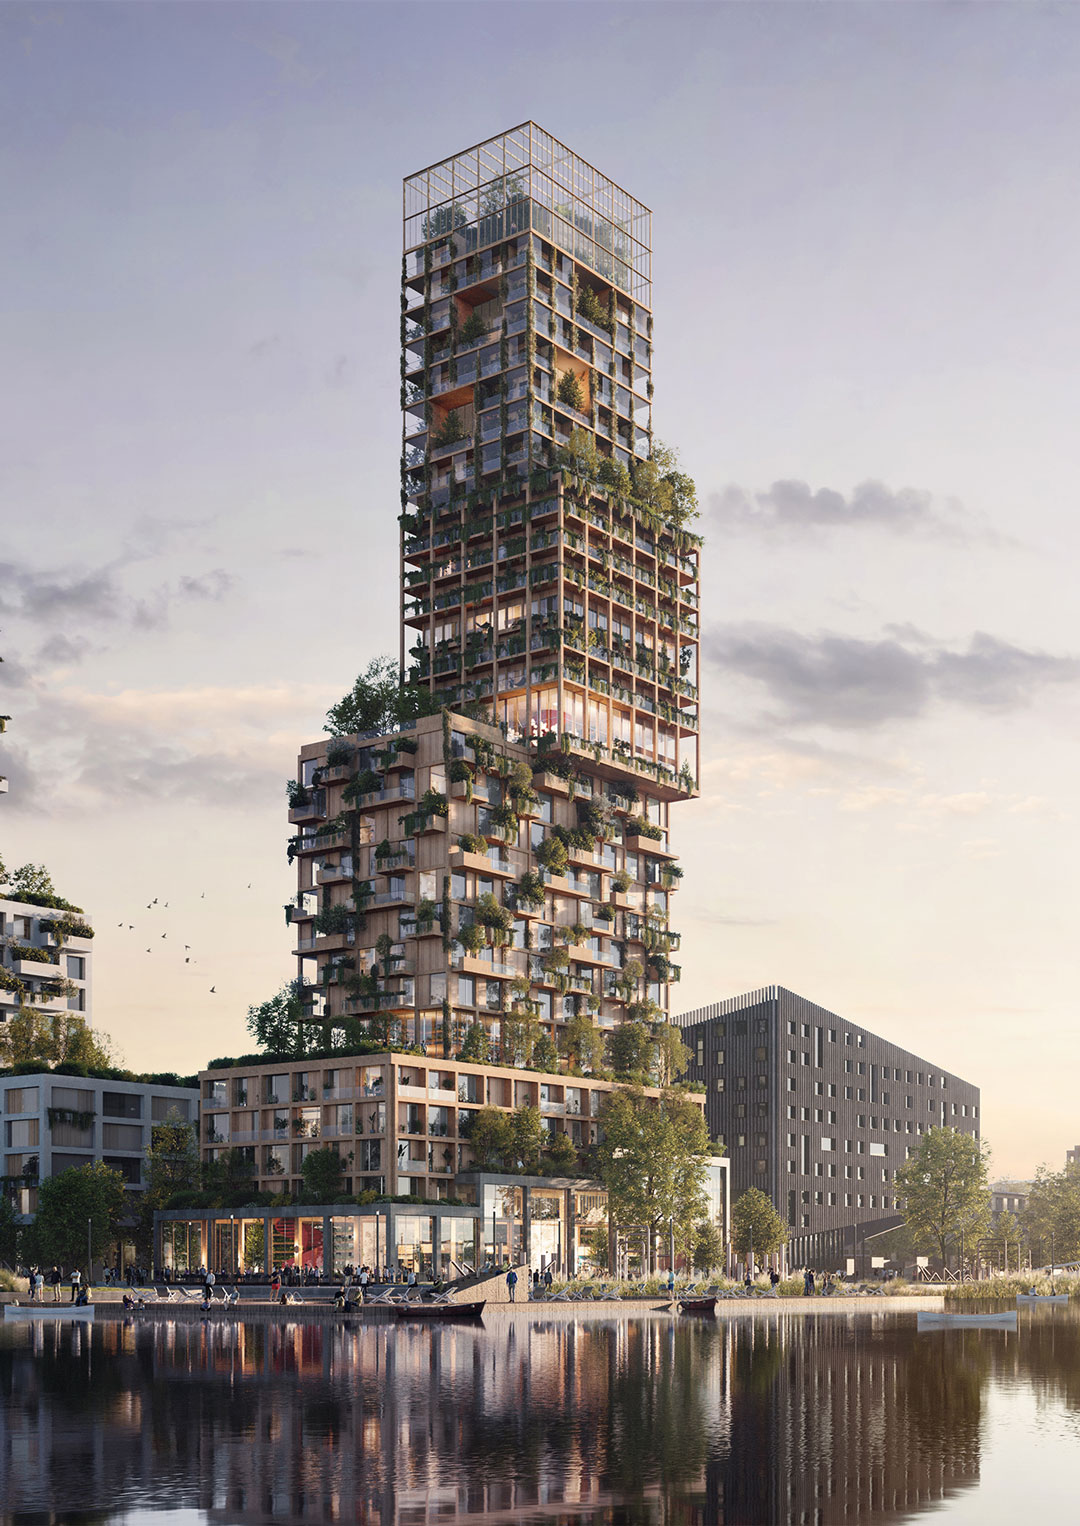 The Urban Tree Village offers a solution for how we might accommodate and encourage co-living in cities where space is limited. A group of citizens asked us to investigate the importance and possibilities of co-living in an increasingly individualistic society, on the one hand, and conceptualize an (architectural) solution for this trend, on the other. As a result, we delivered the Urban Tree Village: a concept for a community-based highrise in which residents are spread out across four distinct blocks and share bespoke facilities. By blending together sustainable design and shared living principles, the Urban Tree Village sends a hopeful message to those who are working to address polarization, loneliness and climate change in cities.